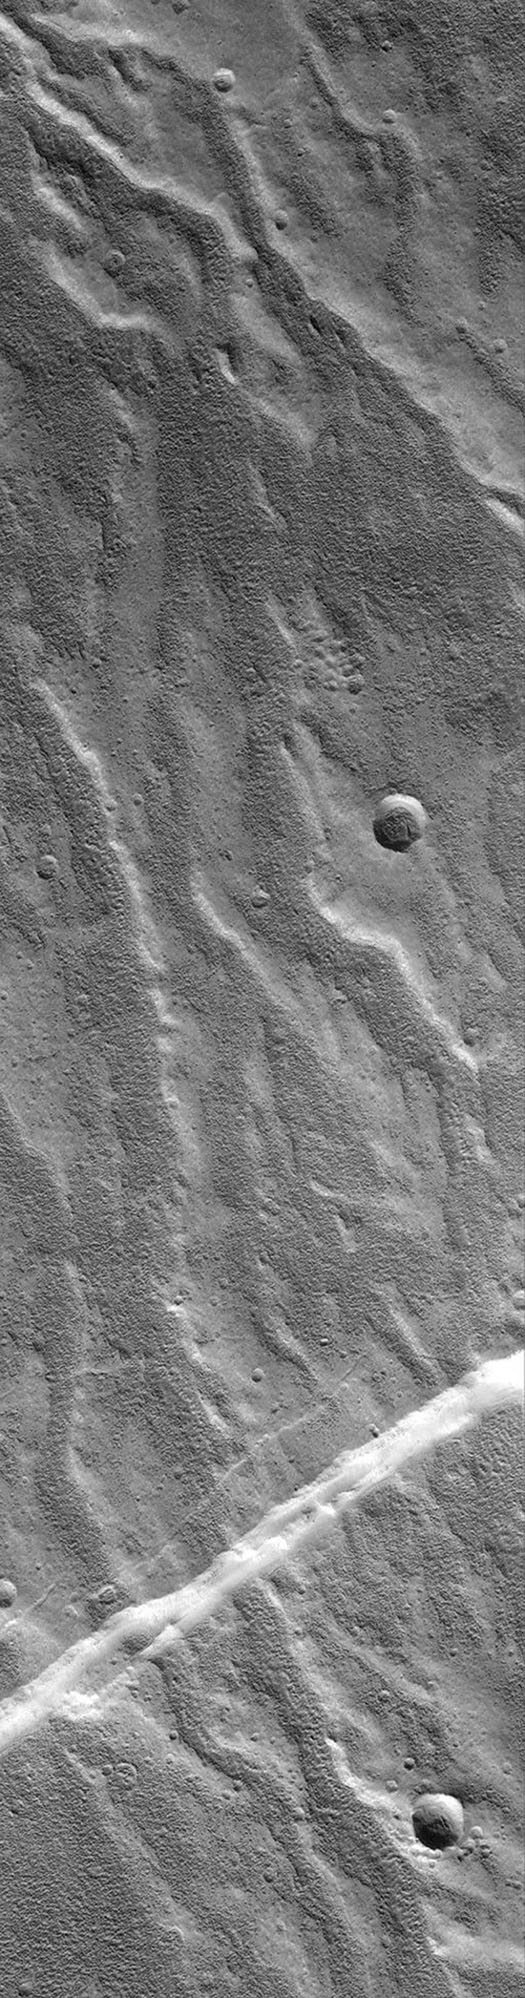 NASA's Mars Global Surveyor shows the northwest flanks of the broad, northern Tharsis volcano, Alba Patera on Mars. A plethora of what appeared to be branching valley networks running down the volcano slopes.